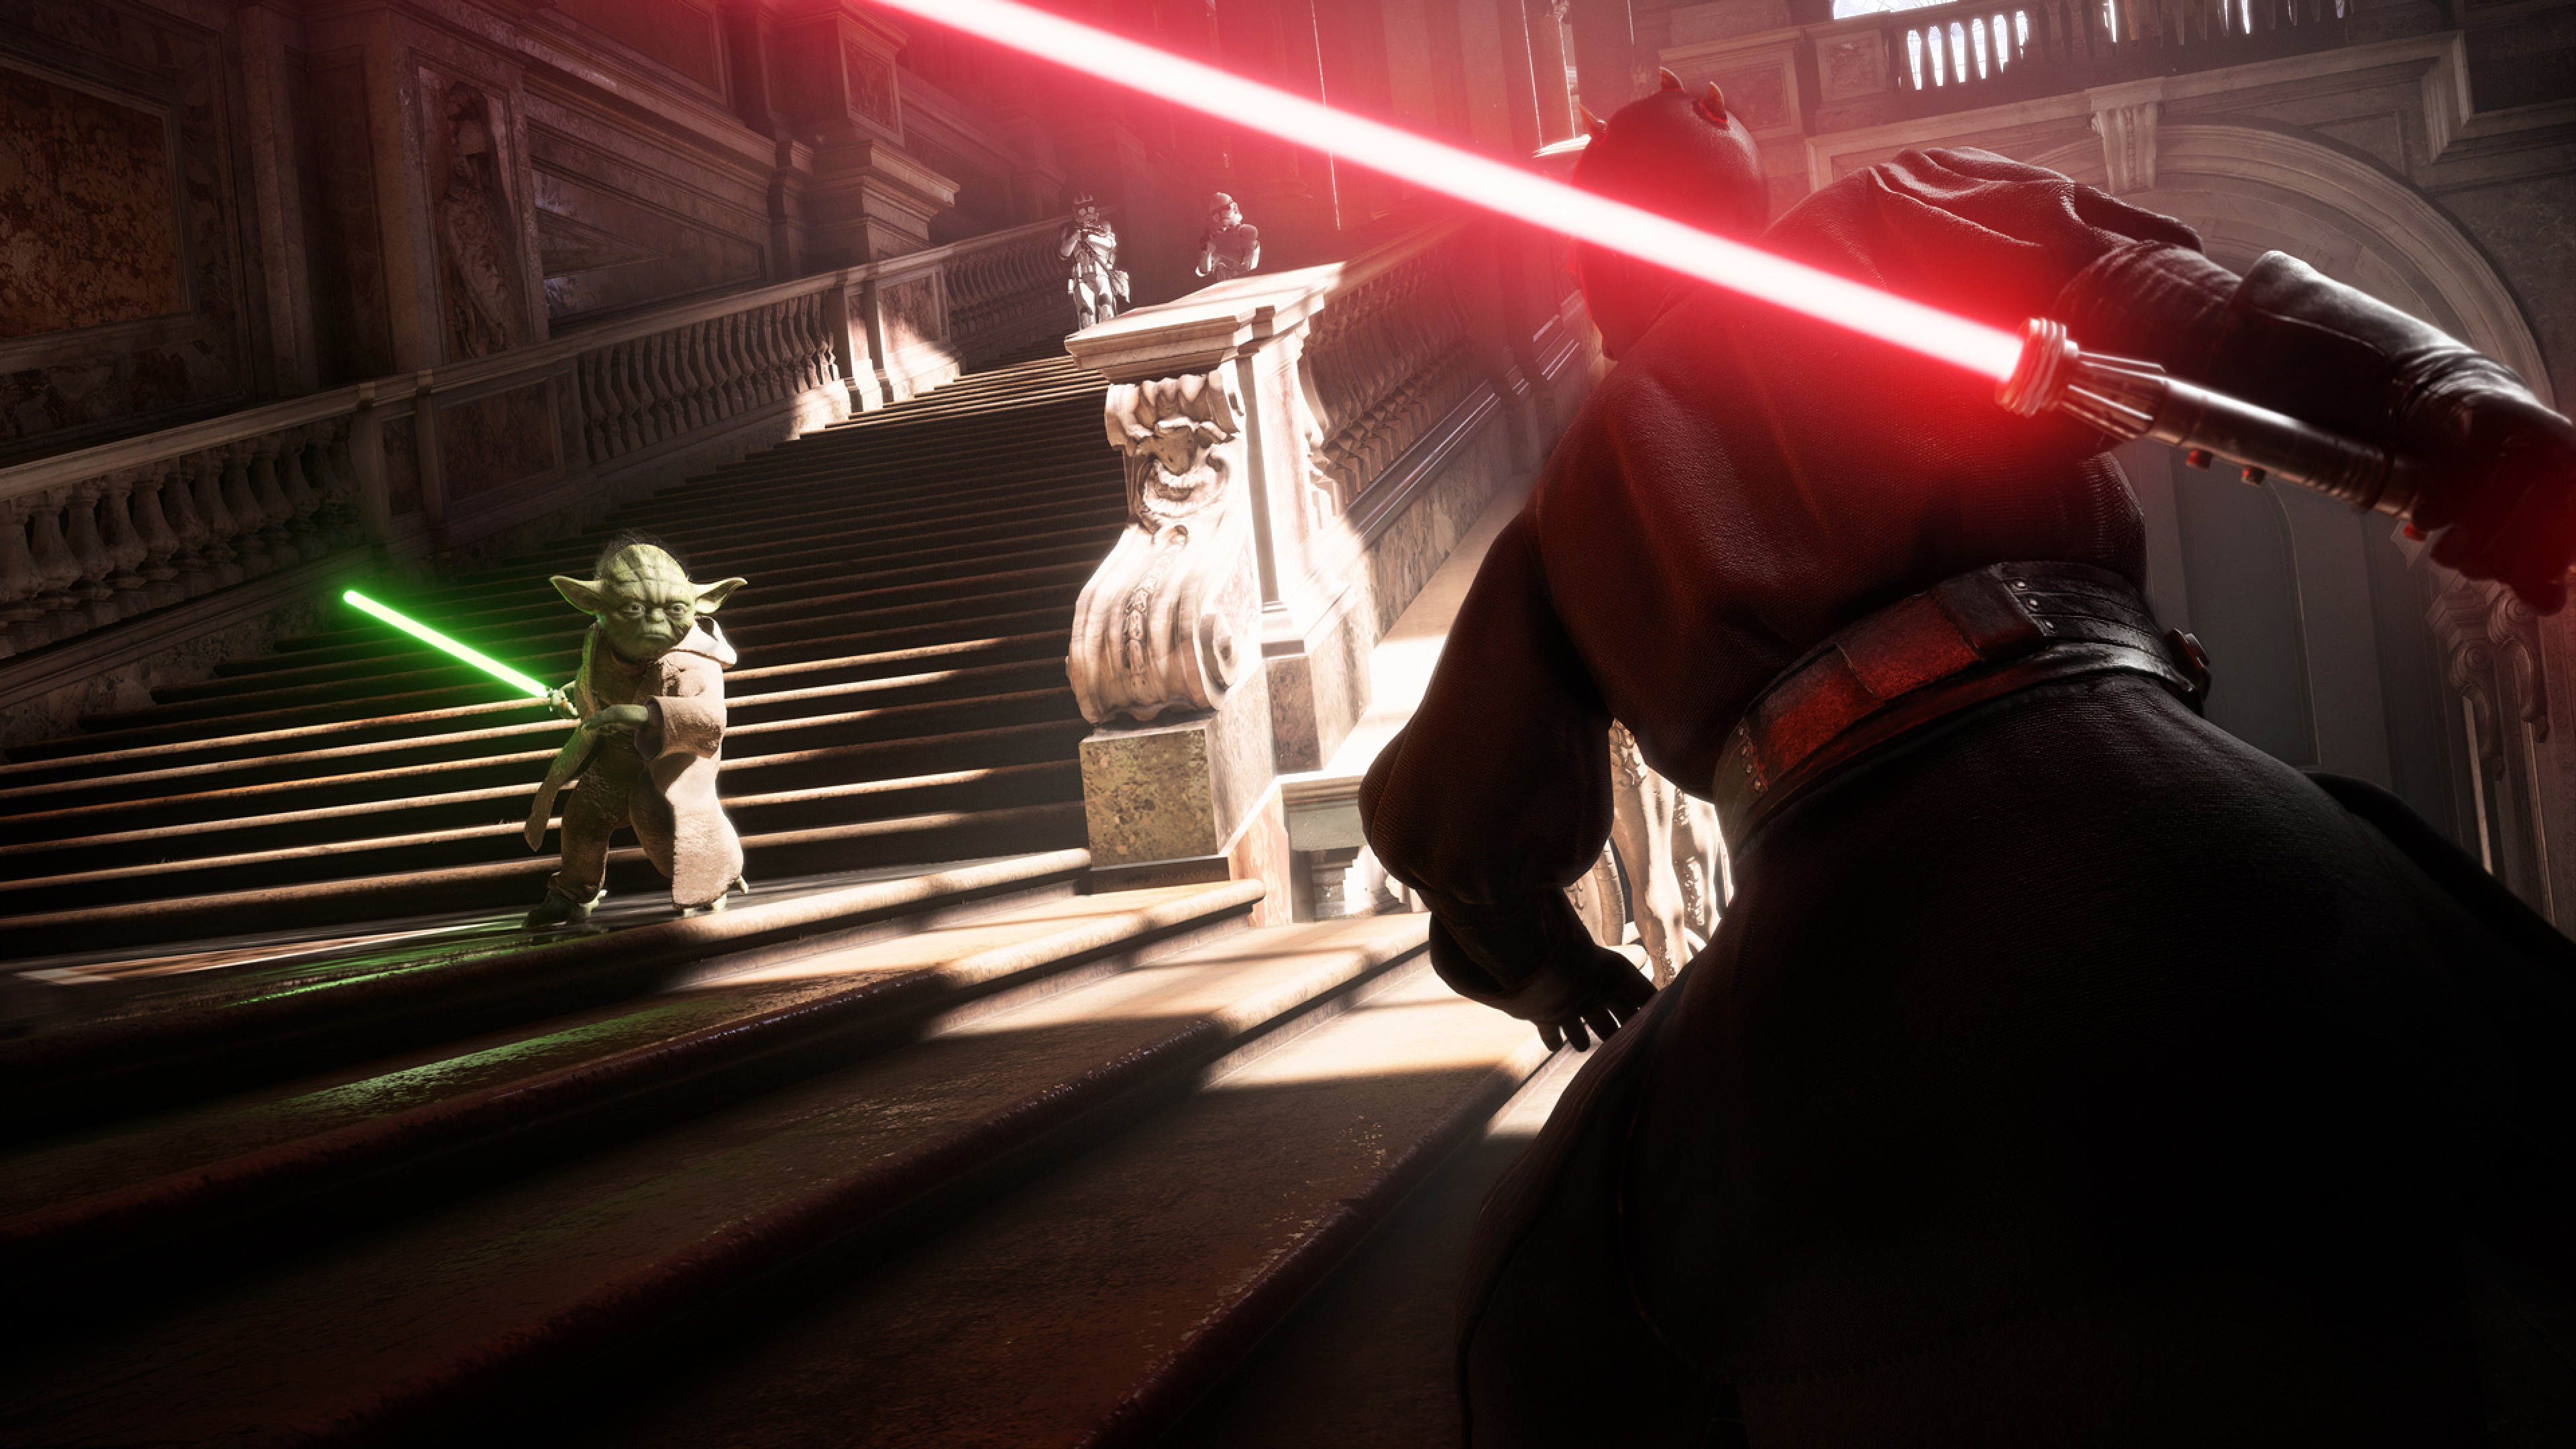 3840x2160 Yoda Vs Darth Vader Star Wars Battlefront 2 4k